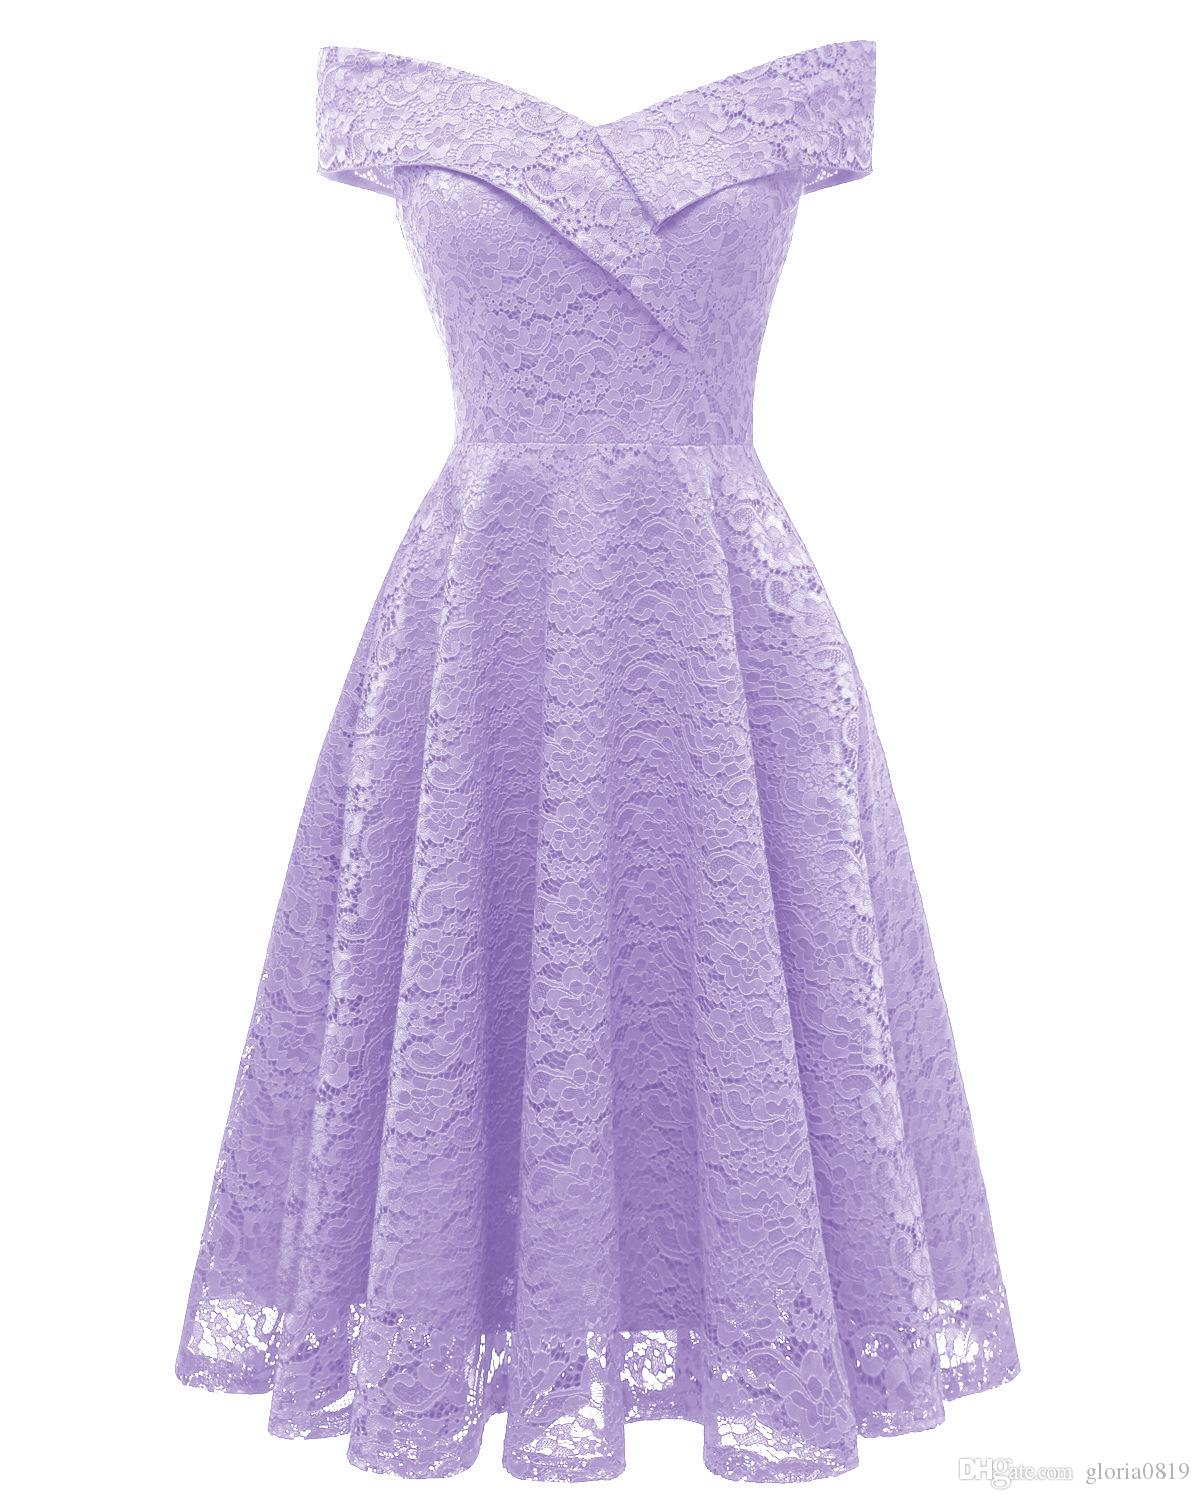 2019 Purple Lavender Women Dress Off Shoulder 2019 Cap Sleeves Knee Length  V Neck Midi Lace Skater Dresses For Women Prom Party Birthday Holiday From